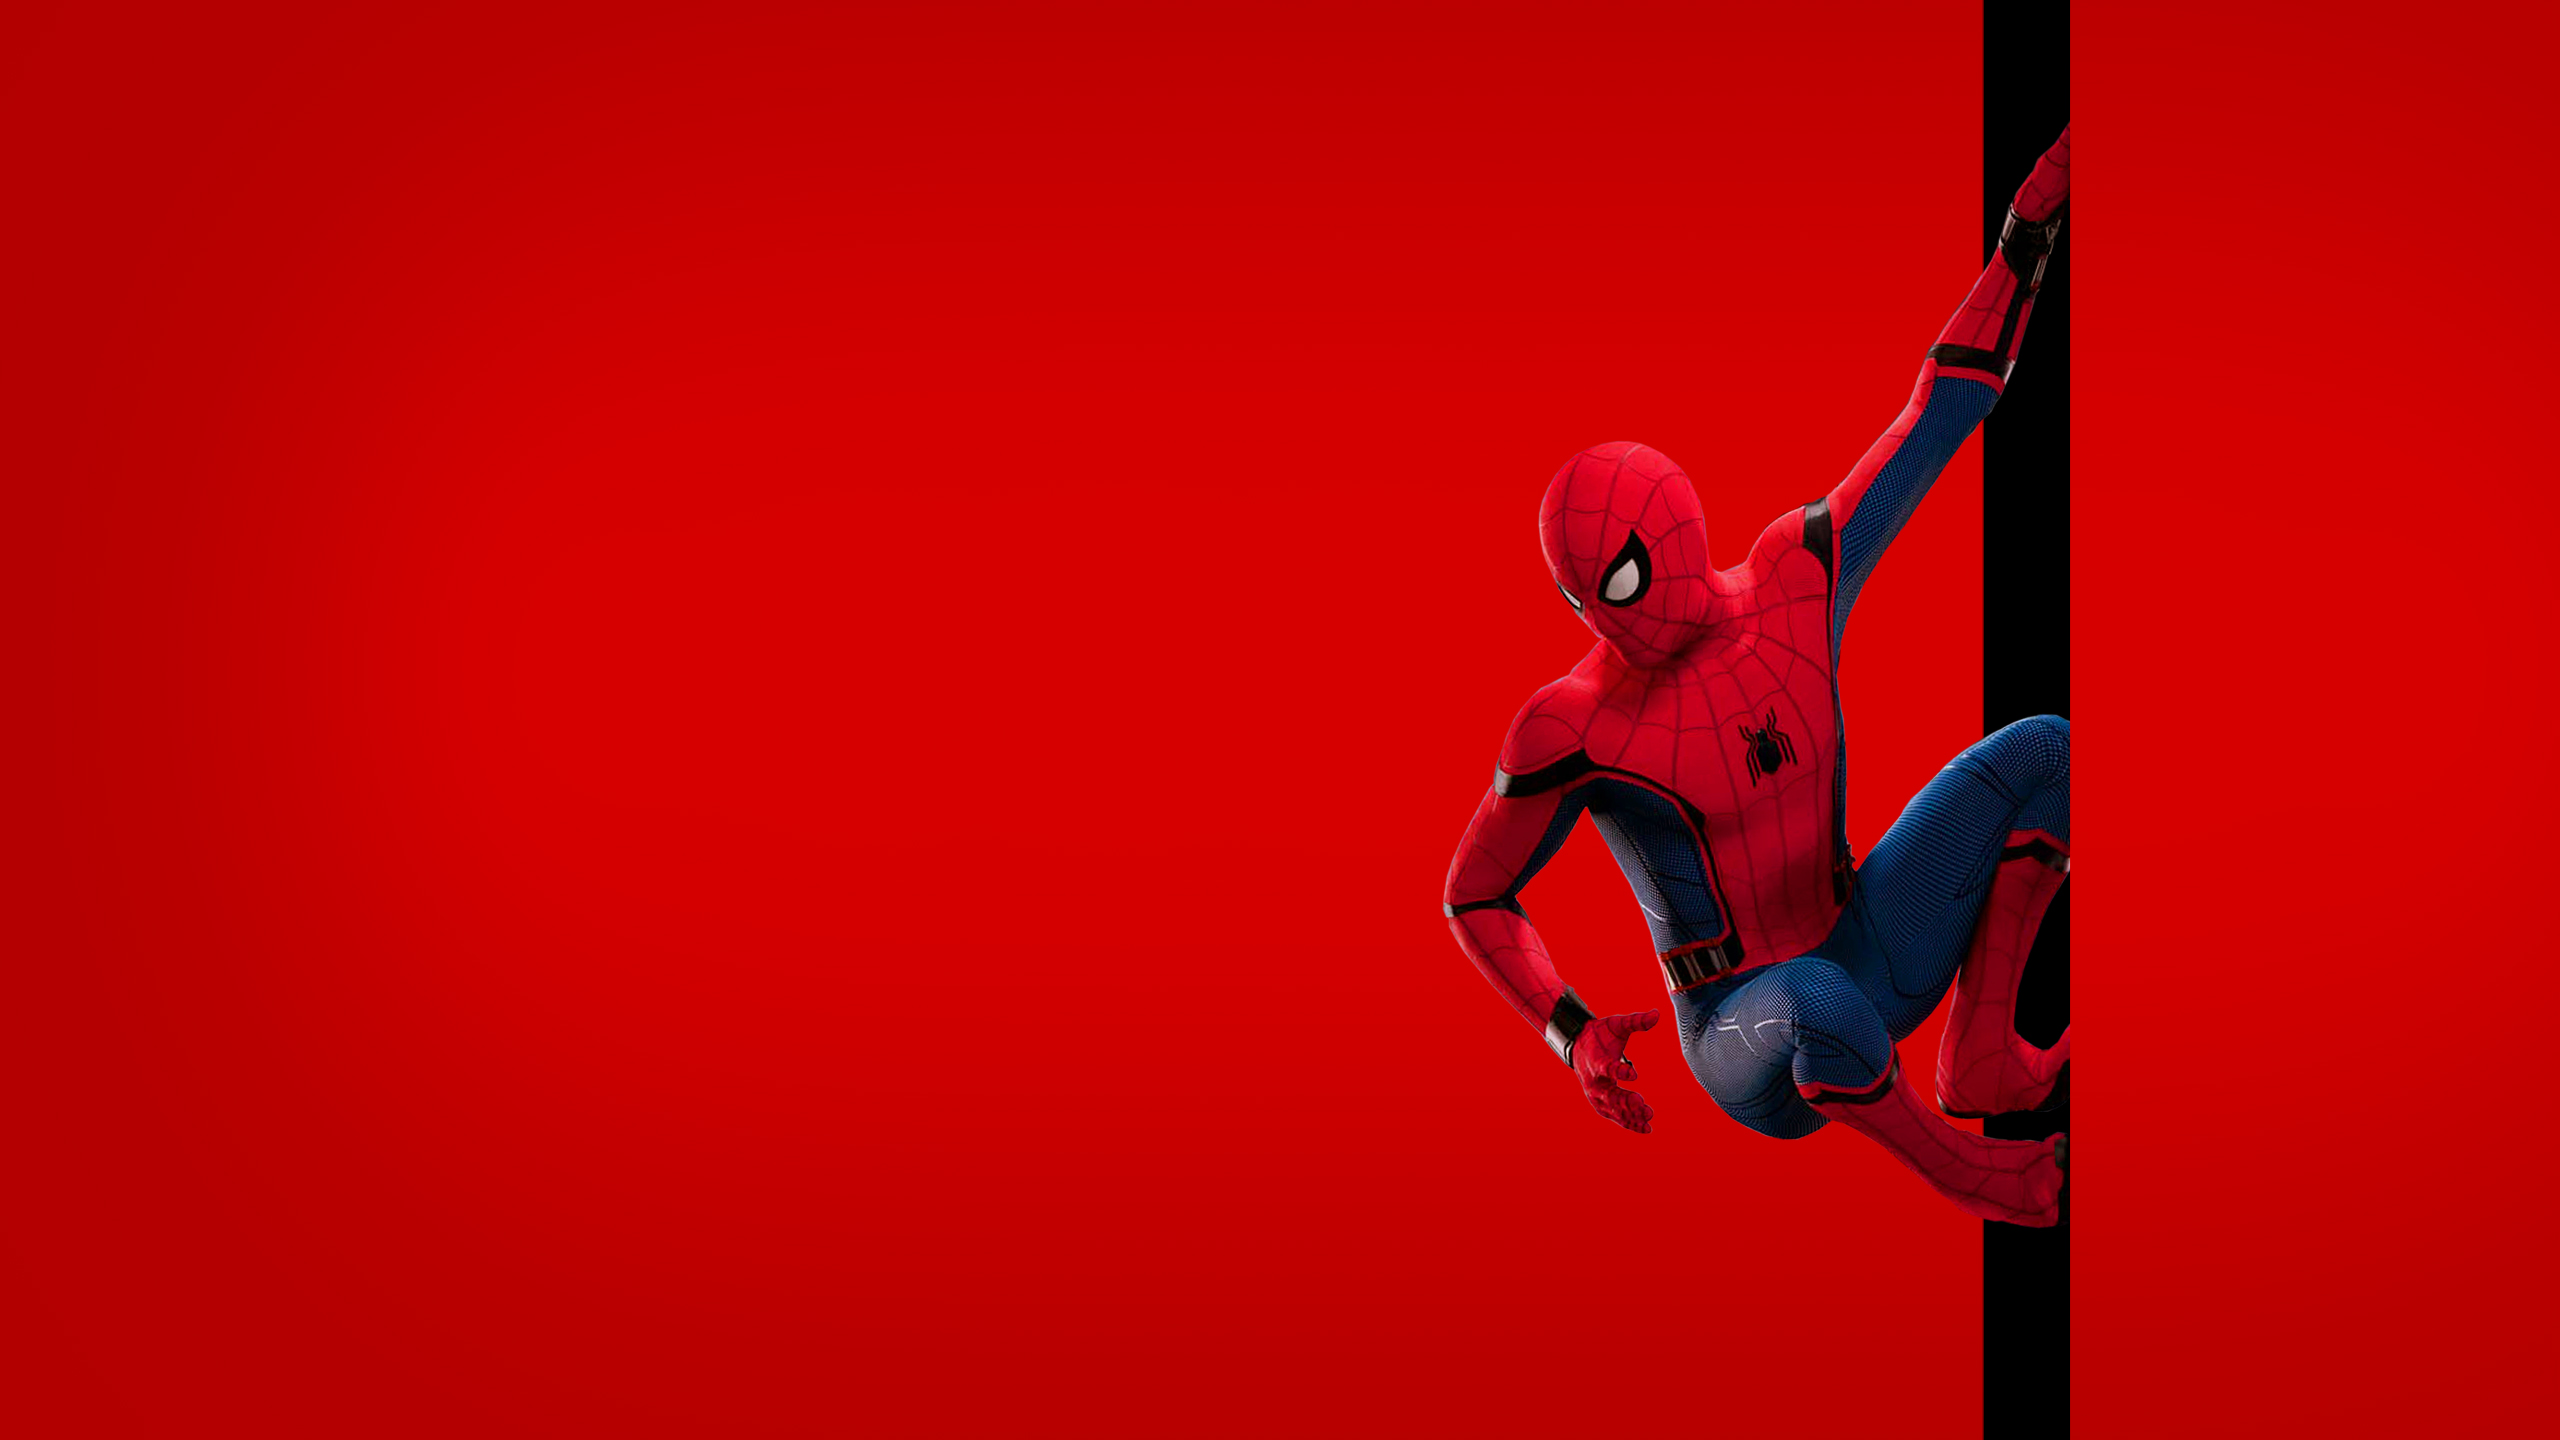 Spider Man Homecoming wallpapers   Album on Imgur 2560x1440